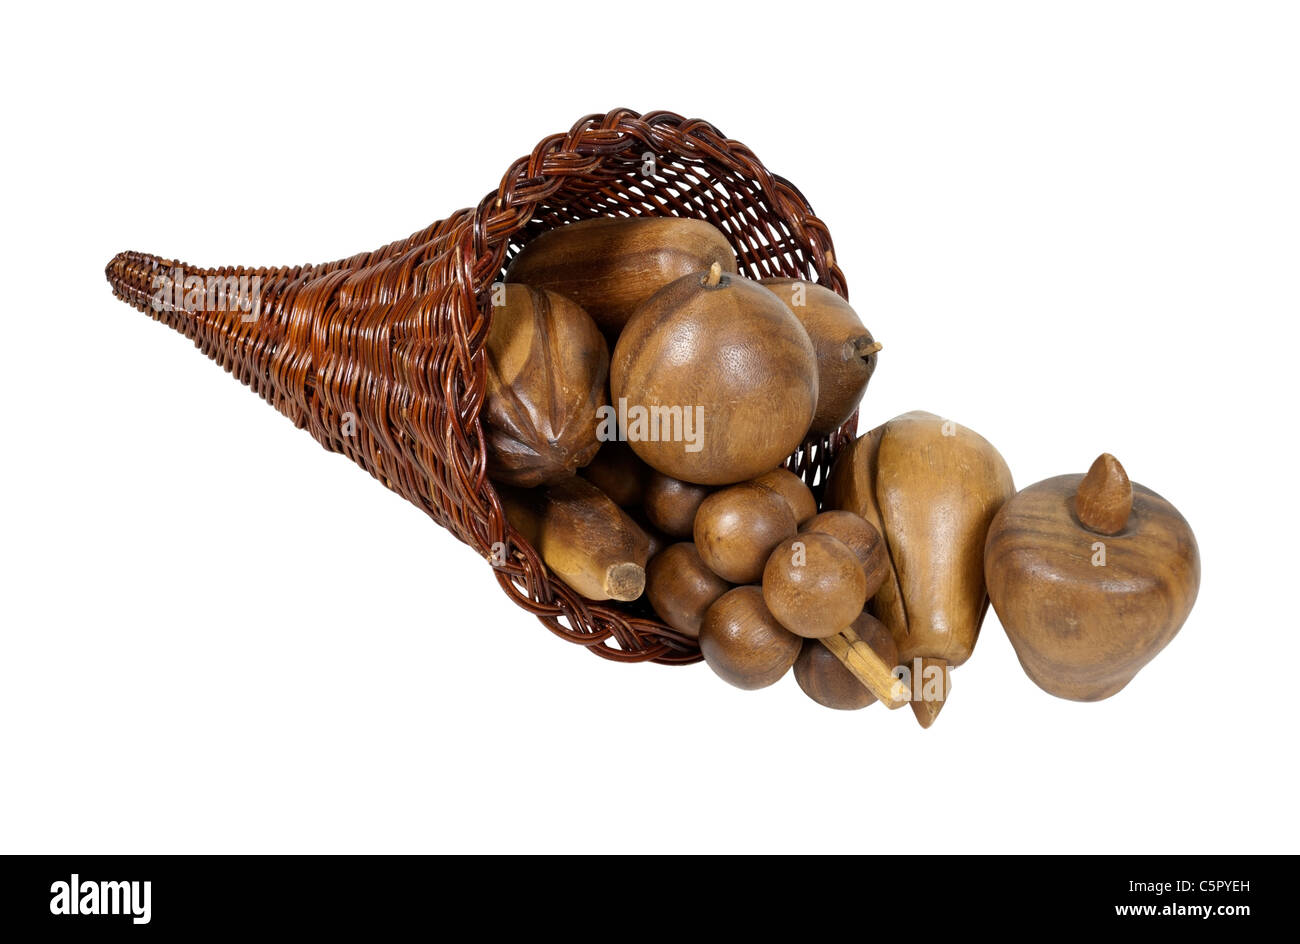 Preserved abundance cornucopia wicker horn which is symbolic for plentiful abundance - path included - Stock Image